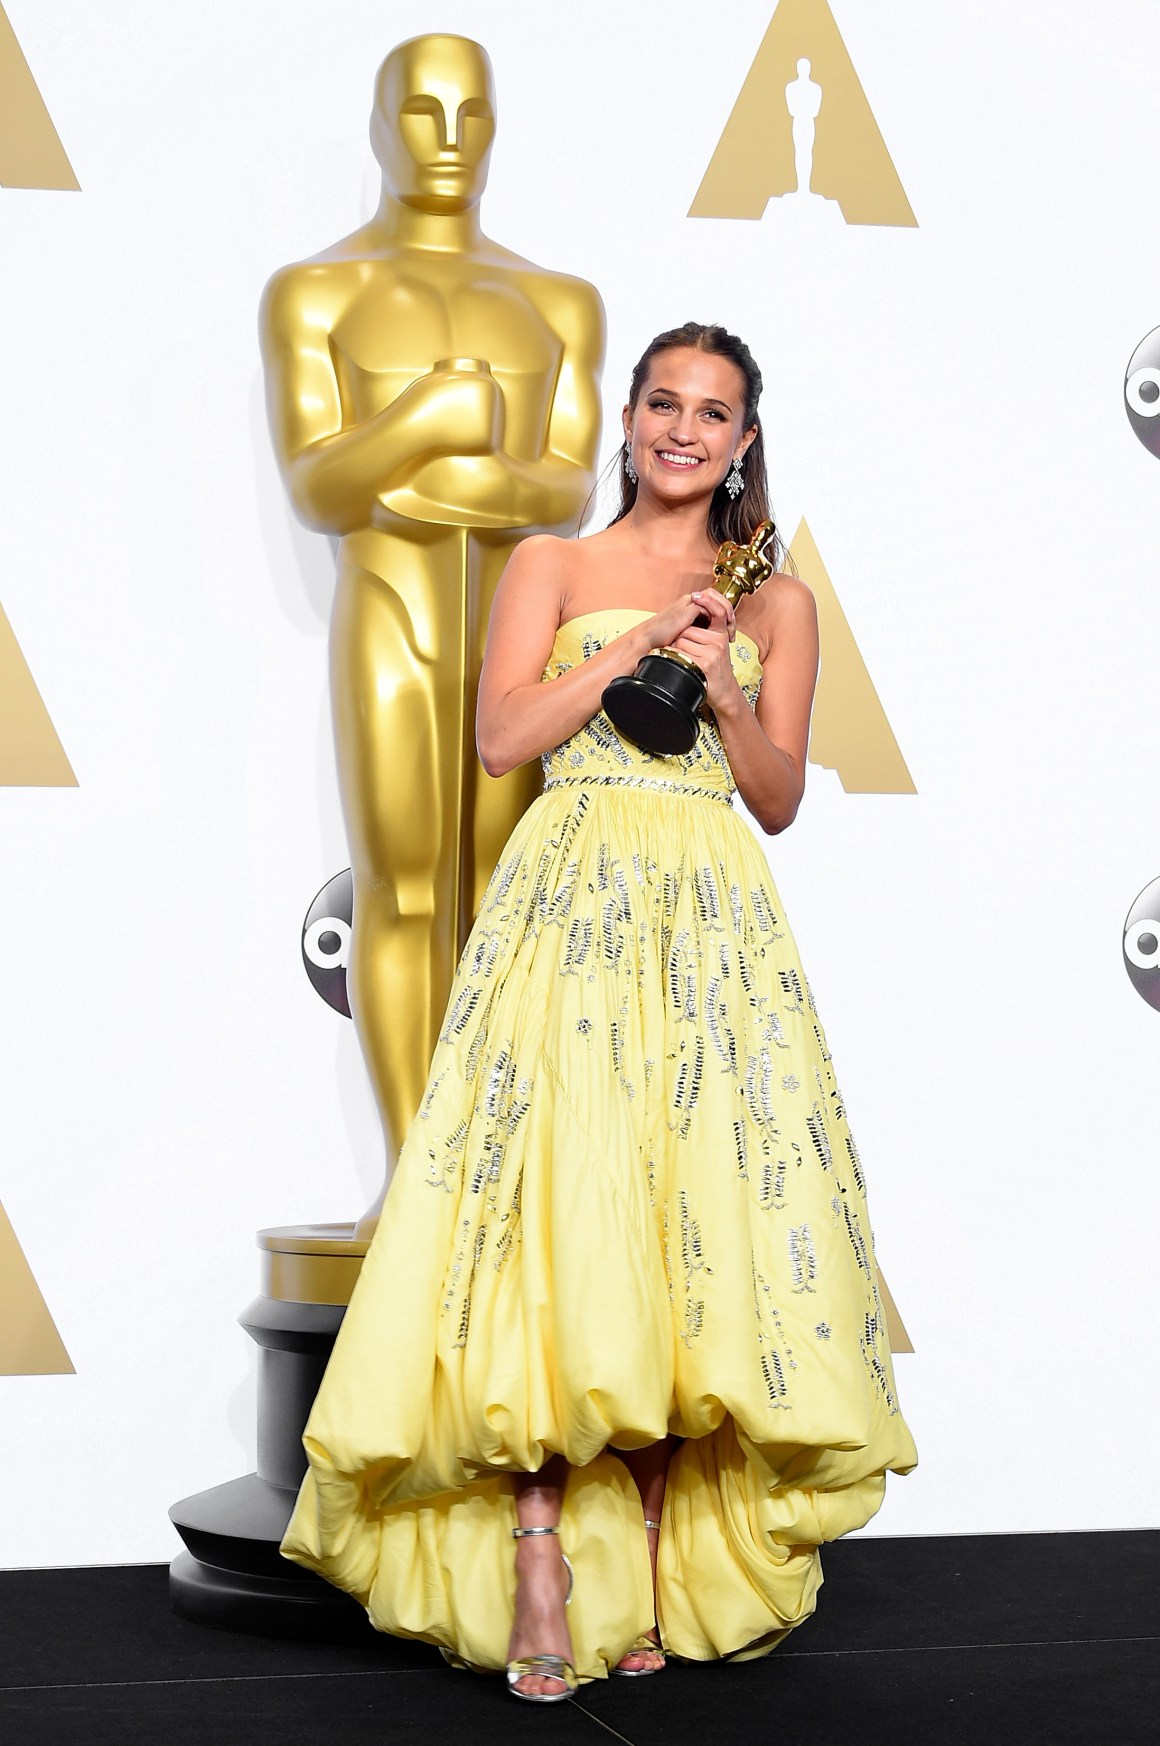 HOLLYWOOD, CA - FEBRUARY 28: Actress Alicia Vikander, winner of the award for Best Actress in a Supporting Role for 'The Danish Girl,' poses in the press room during the 88th Annual Academy Awards at Loews Hollywood Hotel on February 28, 2016 in Hollywood, California. (Photo by Steve Granitz/WireImage)